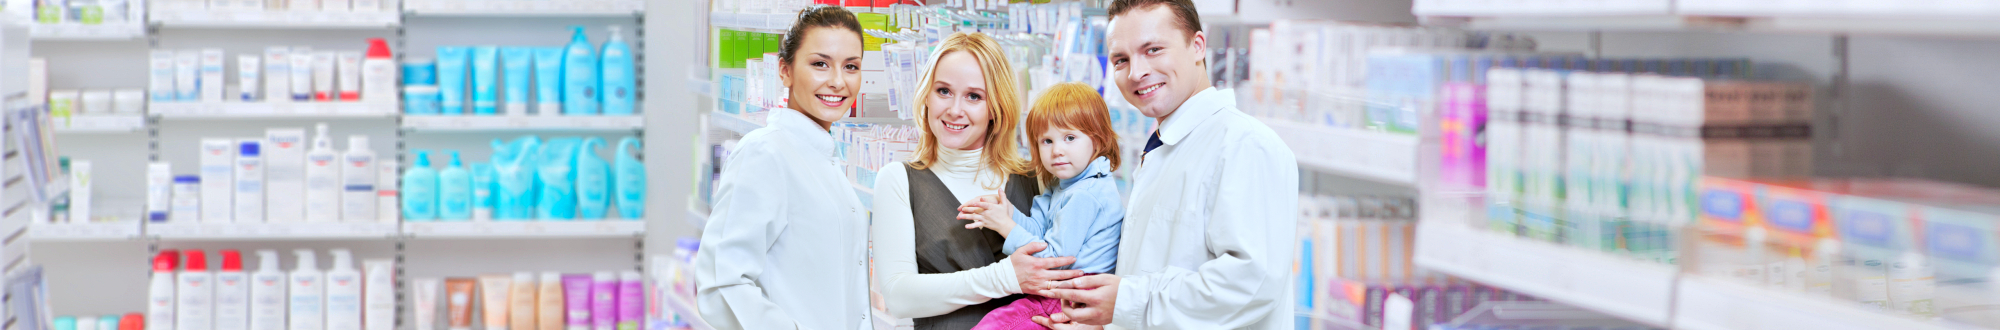 pharmacists, mother and a child smiling